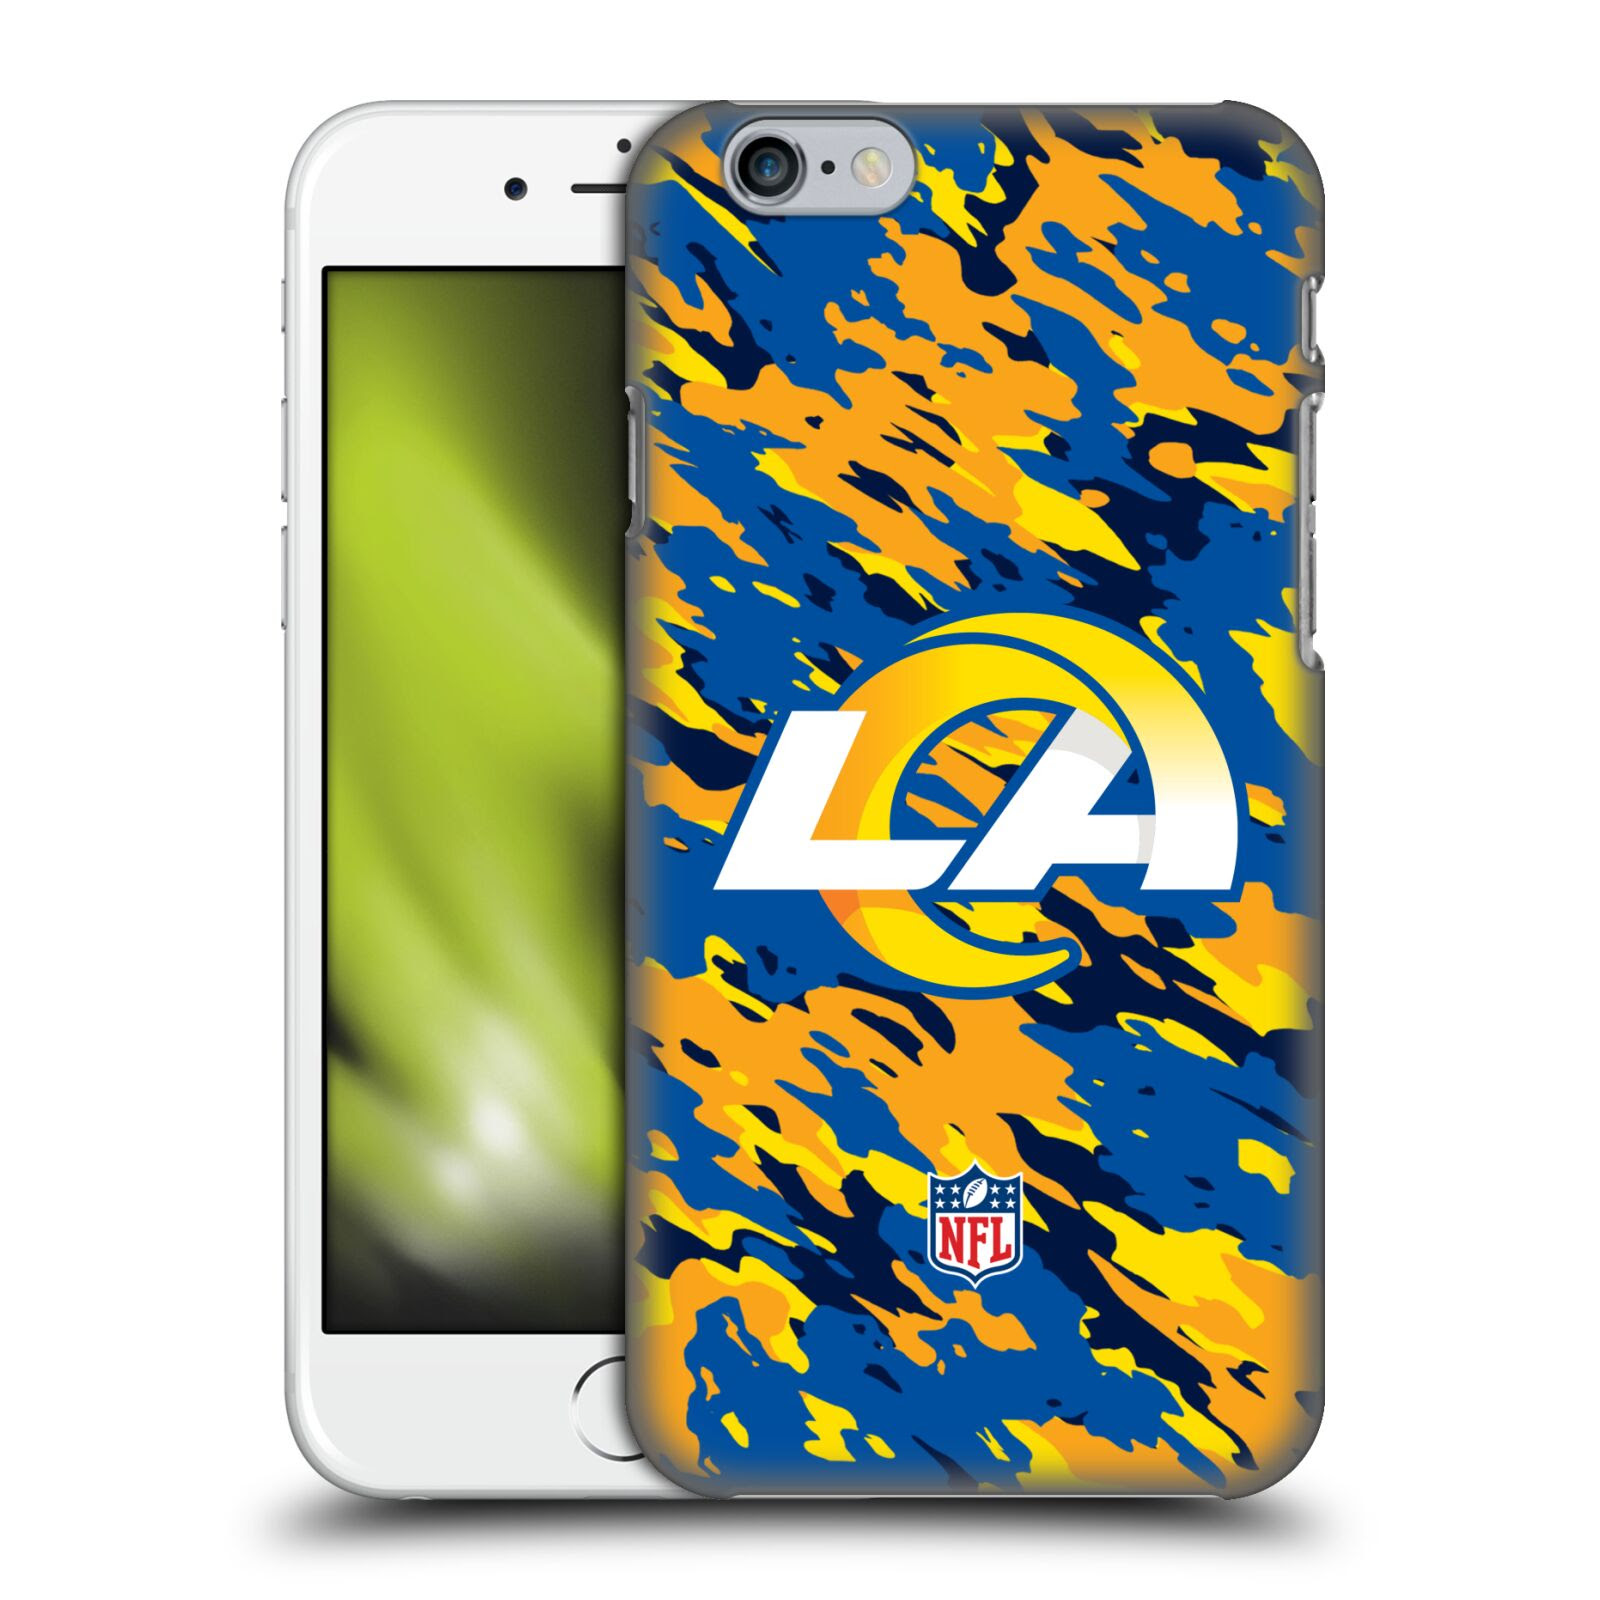 OFFICIAL NFL LOS ANGELES RAMS LOGO HARD BACK CASE FOR APPLE iPHONE PHONES eBay